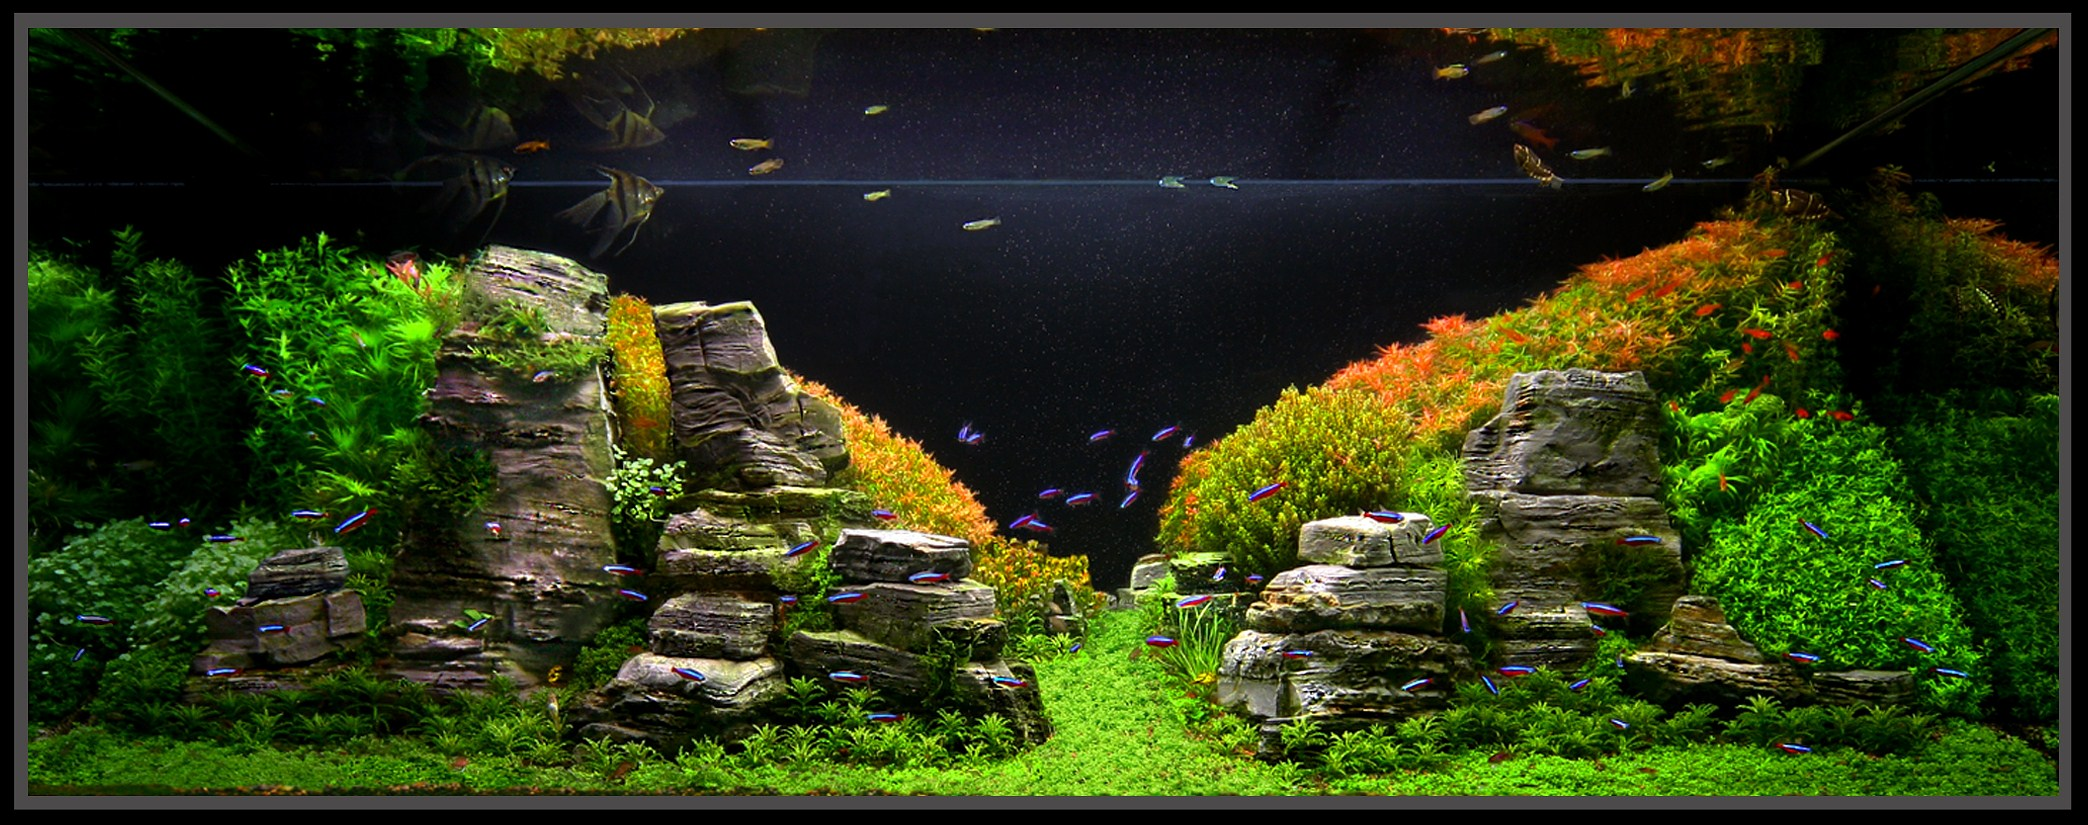 Planted aquarium inspiration for a fresh year imod for Plante aquarium